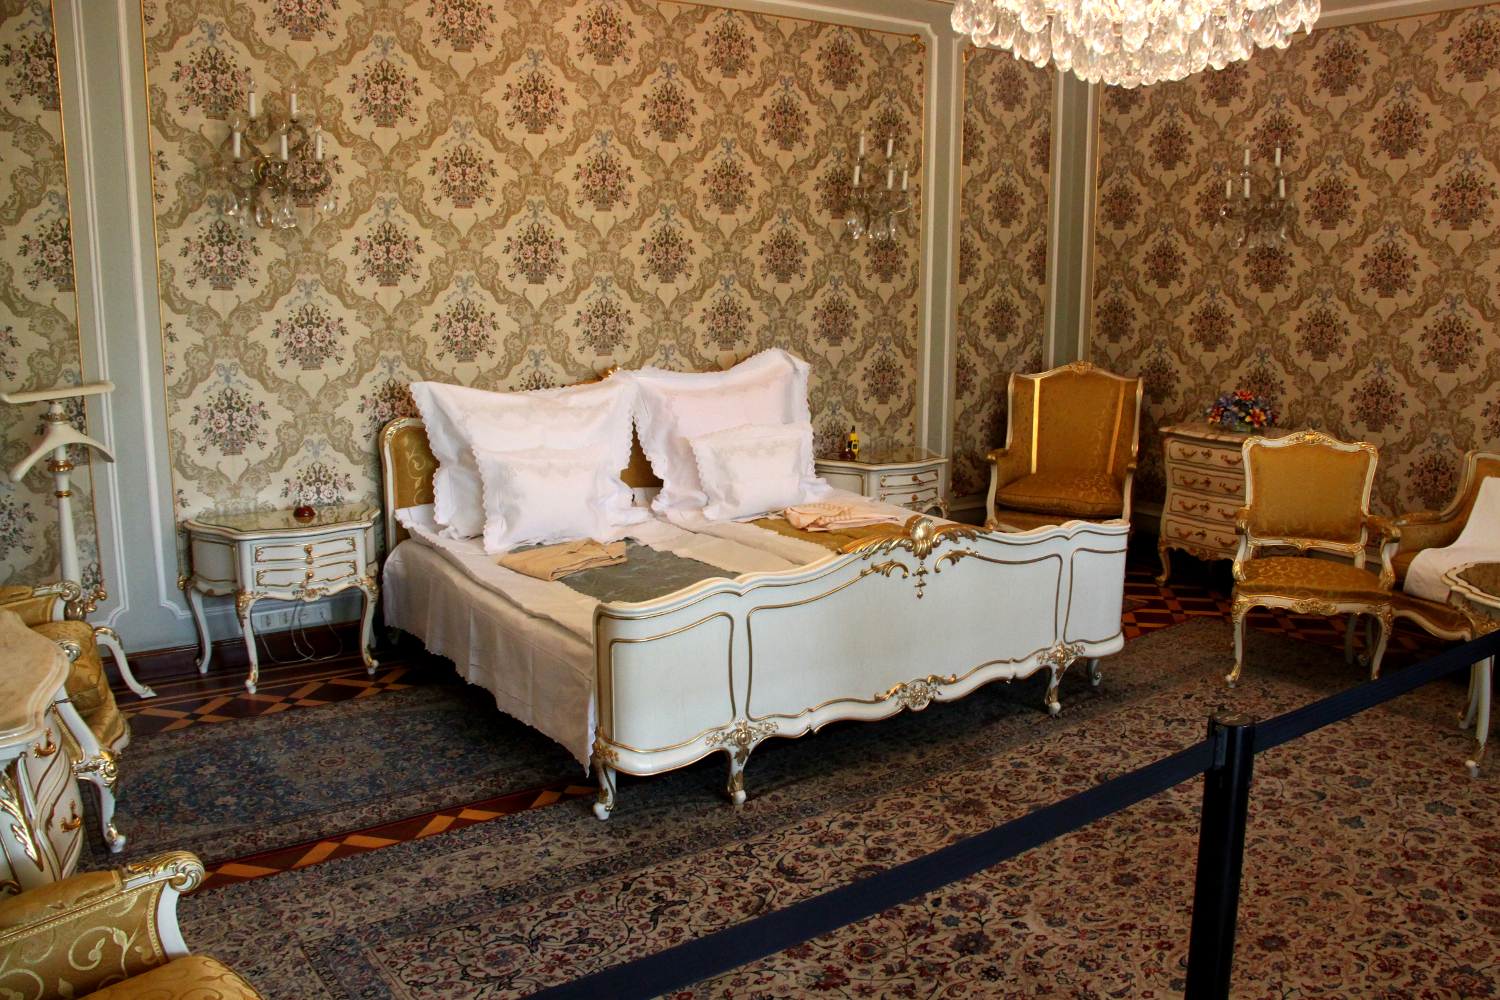 Primaverii (Spring) Palace, Ceausescu's private residence - Nicolae and Elena Ceausescu's bedroom - they have the original sheets